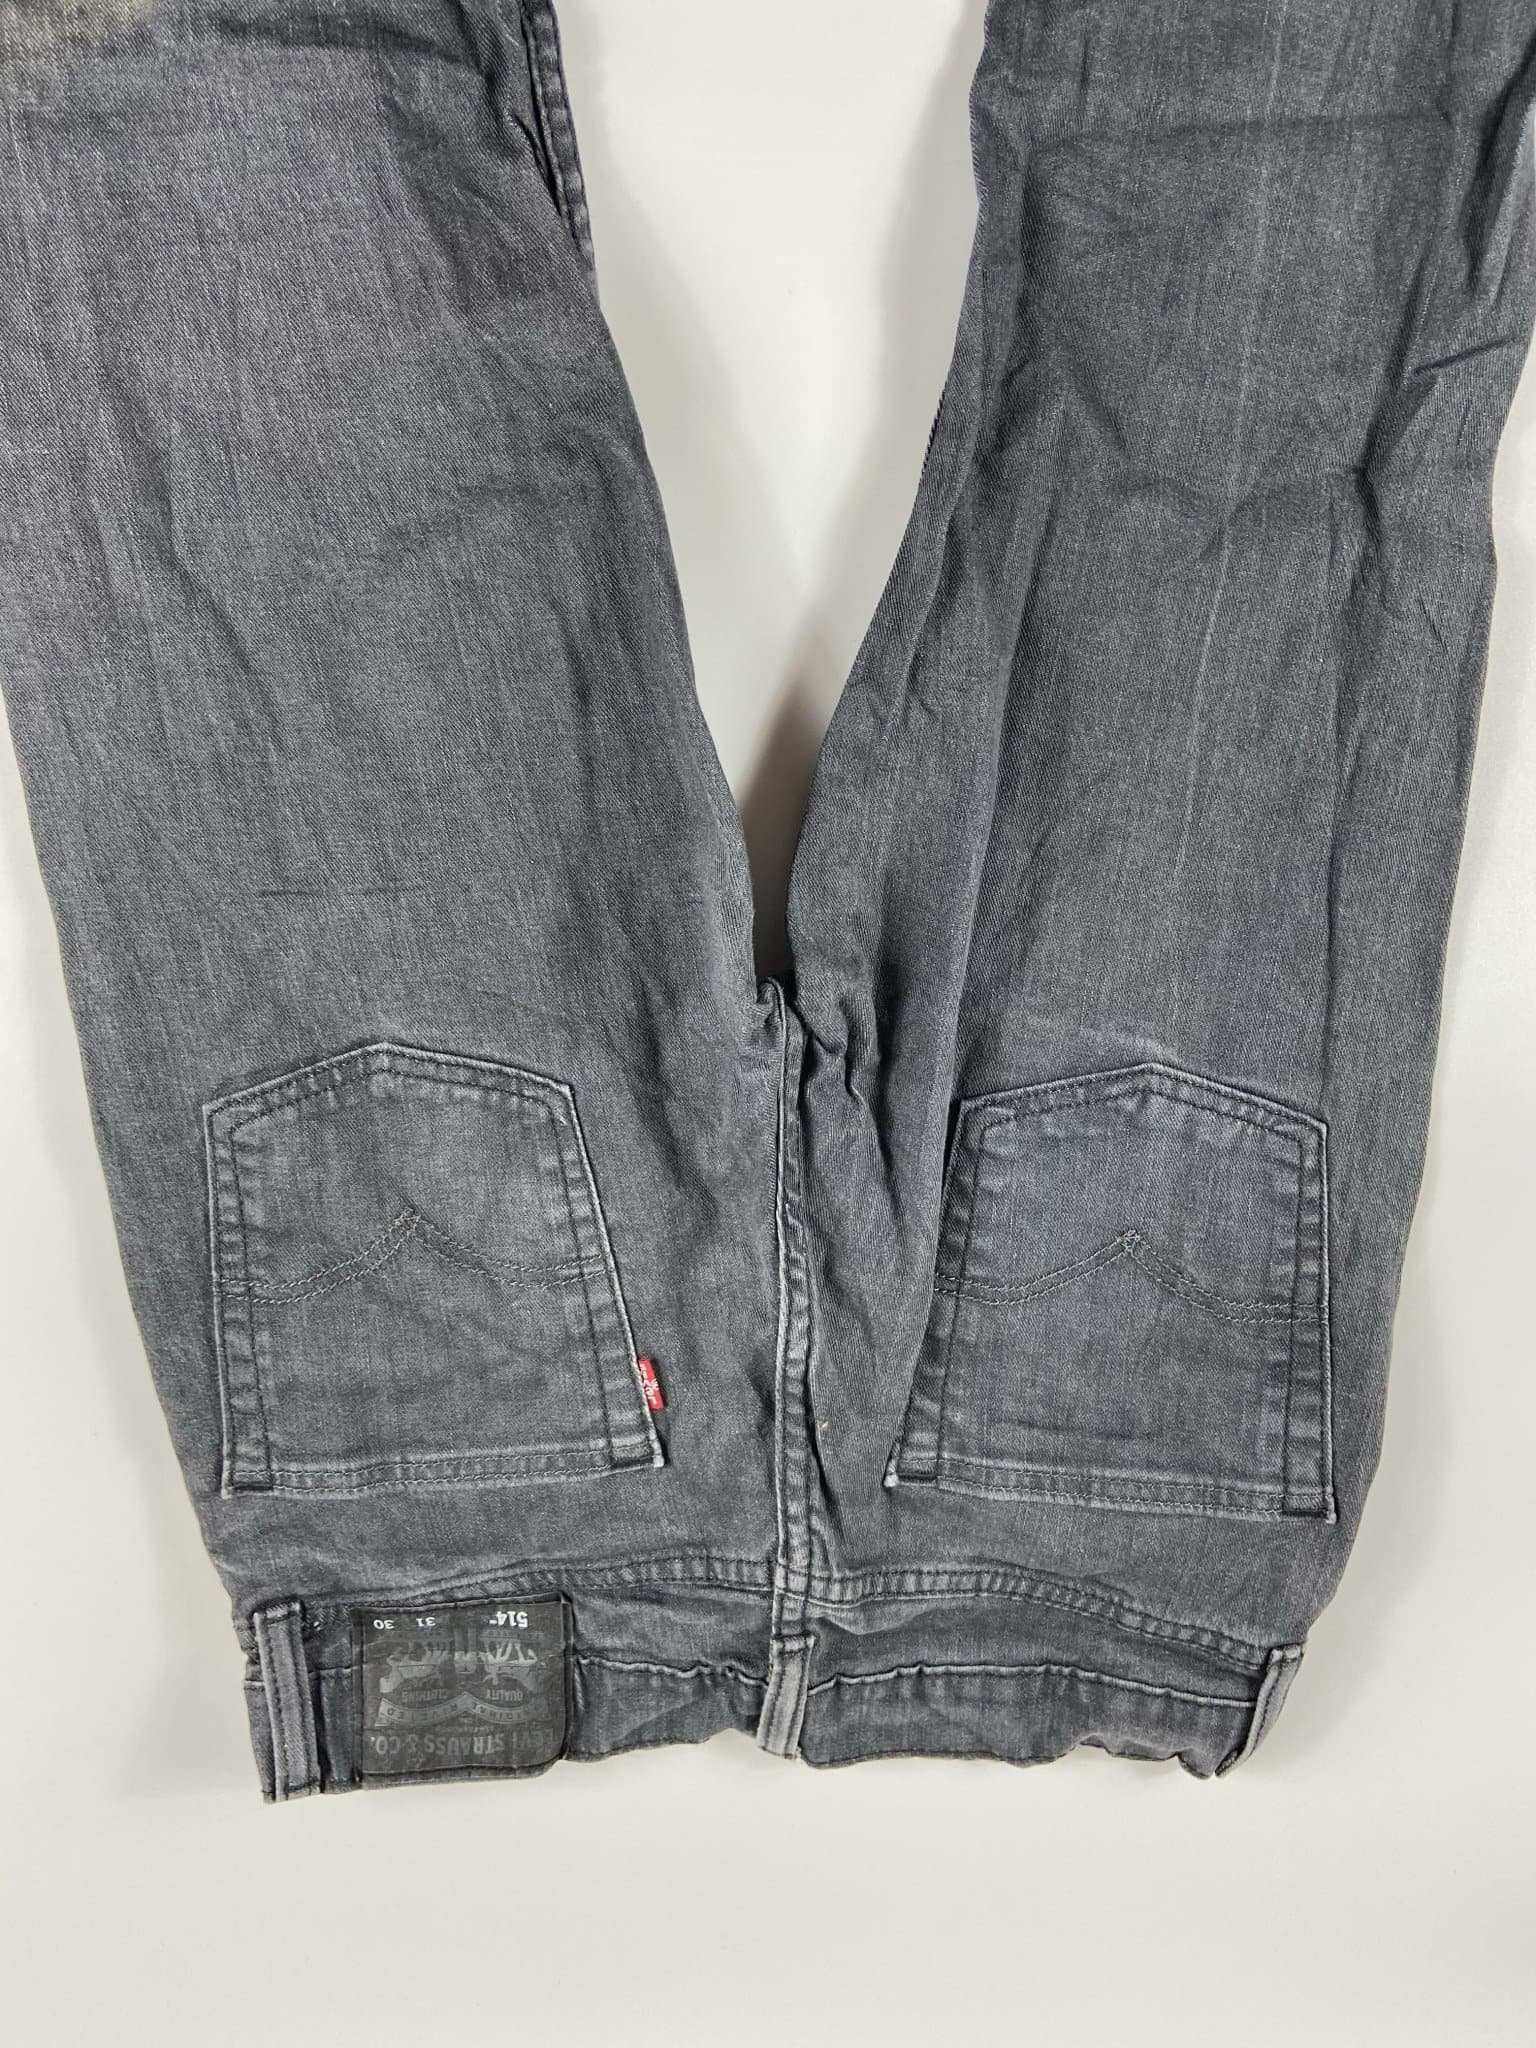 Vintage Levi's Classic 514 Jeans W31 L30 (D8) - Discounted Deals UK